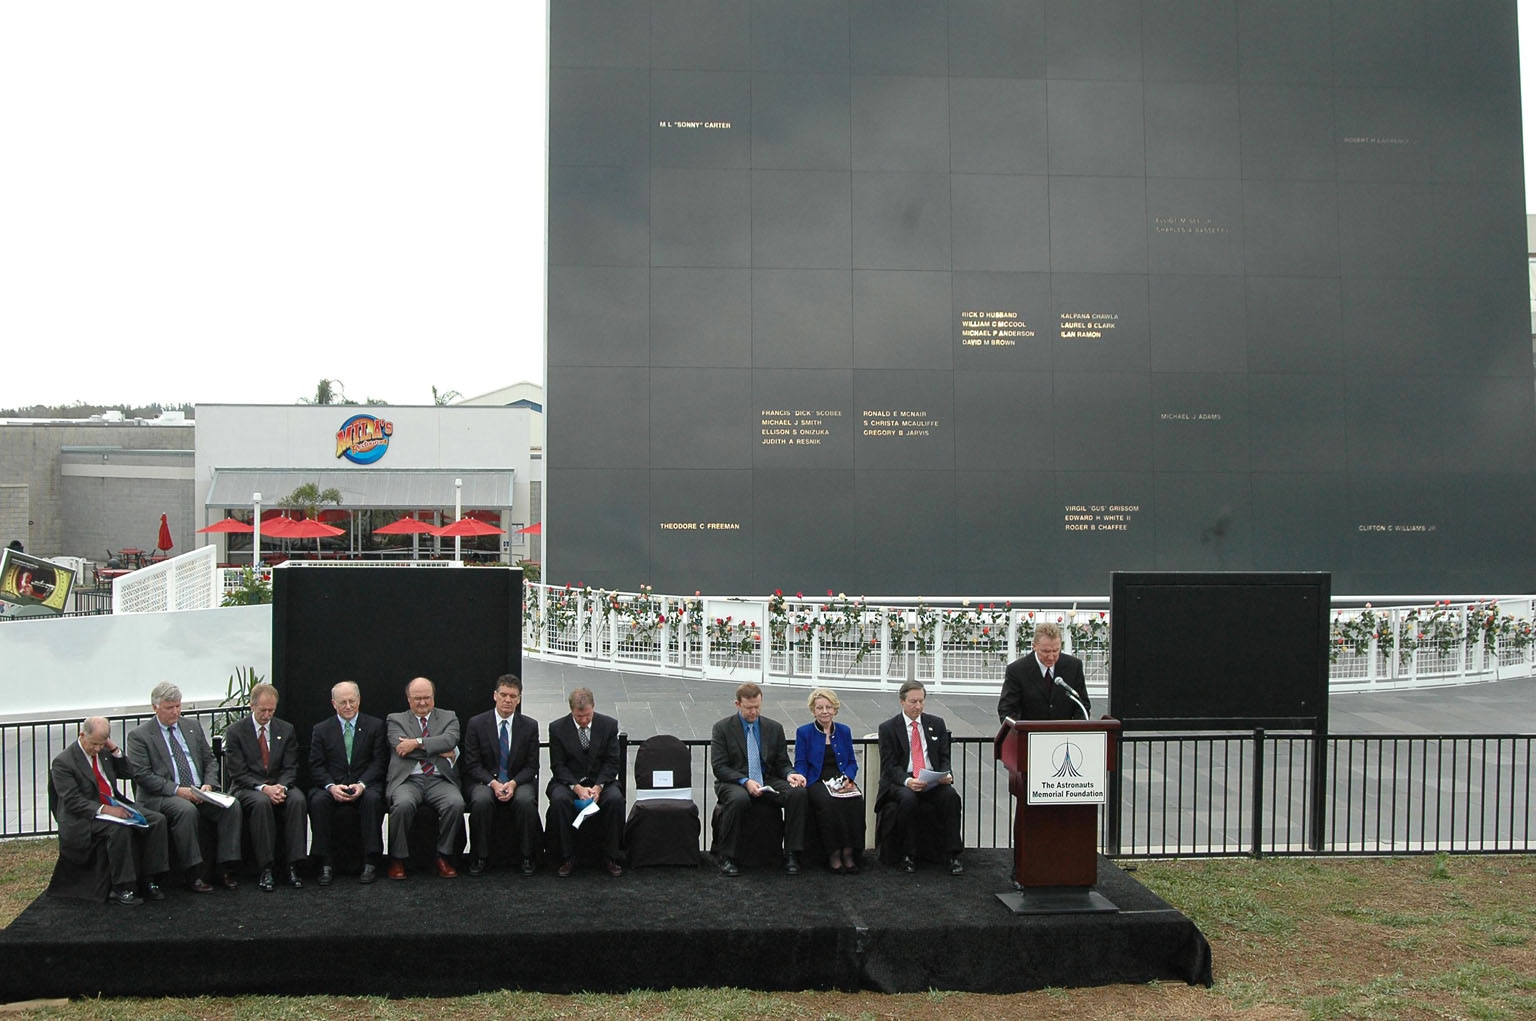 KENNEDY SPACE CENTER, FLA. ? Dr. Mick Ukleja gives the invocation at the opening of the Challenger memorial ceremony held Jan. 28 in front of the Space Memorial Mirror at NASA Kennedy Space Center?s Visitor Complex. Others participating in the ceremony are Dr. Stephen Feldman, president of the Astronauts Memorial Foundation; Rep. Dave Weldon and Rep. Tom Feeney; William Potter, chairman of the Board of Directors of the Astronauts Memorial Foundation; William Gerstenmaier, associate administrator for Space Operations at NASA; Jim Kennedy (second from left), center director of KSC; June Scobee Rodgers, widow of Dick Scobee, commander of Challenger; Col. Richard Scobee, son of Dick Scobee and June Scobee Rodgers; Capt. Frederick Hauck, commander of the first mission after Challenger; Dr. Joseph Allen, astronaut and scientist and chairman of the Board of the Challenger Centers for Space Science. June Scobee Rodgers and Gerstenmaier placed a wreath at the base of the memorial. Photo credit: NASA/Kim Shiflett